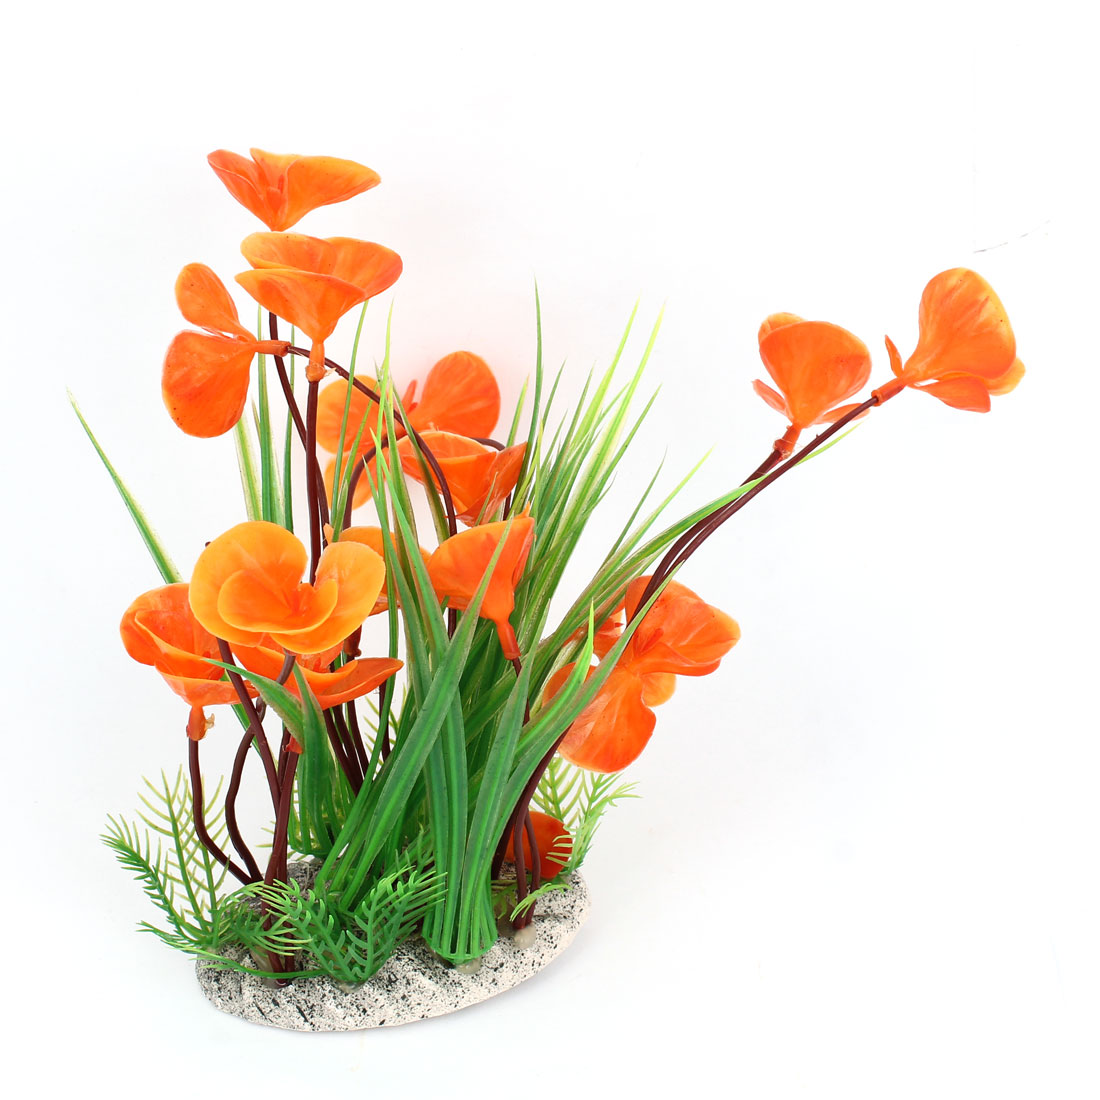 Ceramic Base Orange Flower Green Plastic Plant Grass for Fish Tank